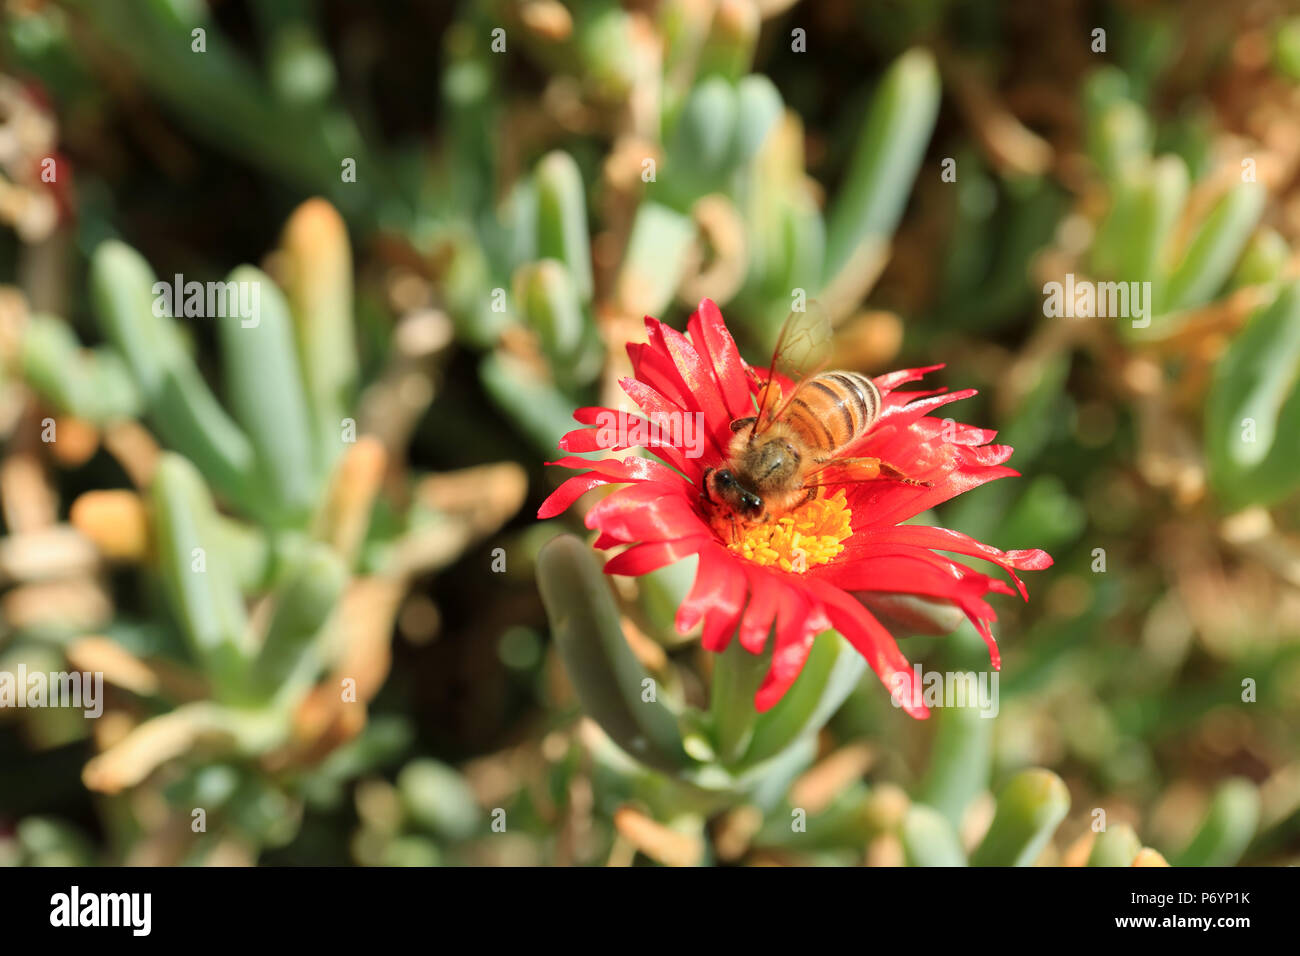 Bee collecting nectar on bright red color karkalla, succulents plants flower, selective focus and blurred background - Stock Image